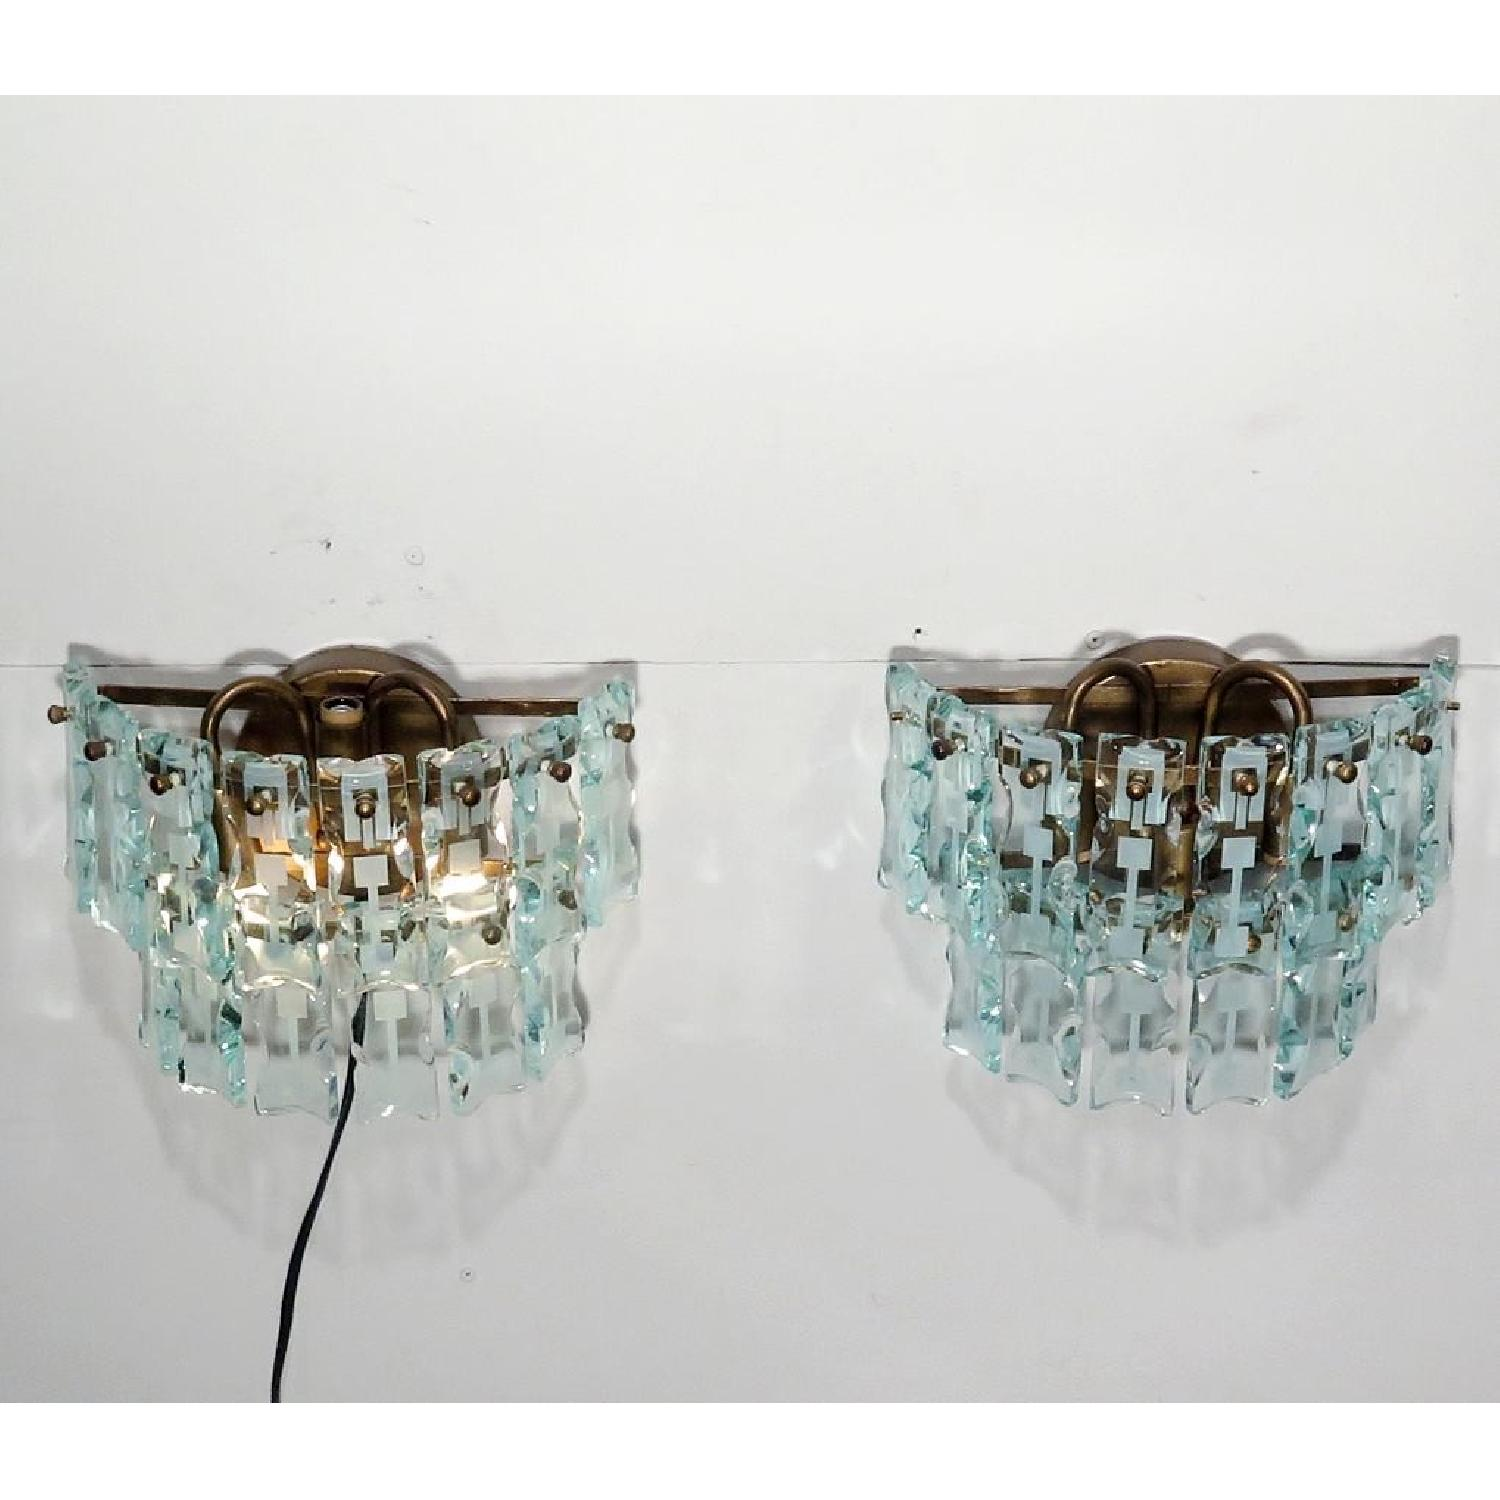 Vintage Mid-Century 3 Light Hanging Glass Bars/Sconces  - Pair - image-4